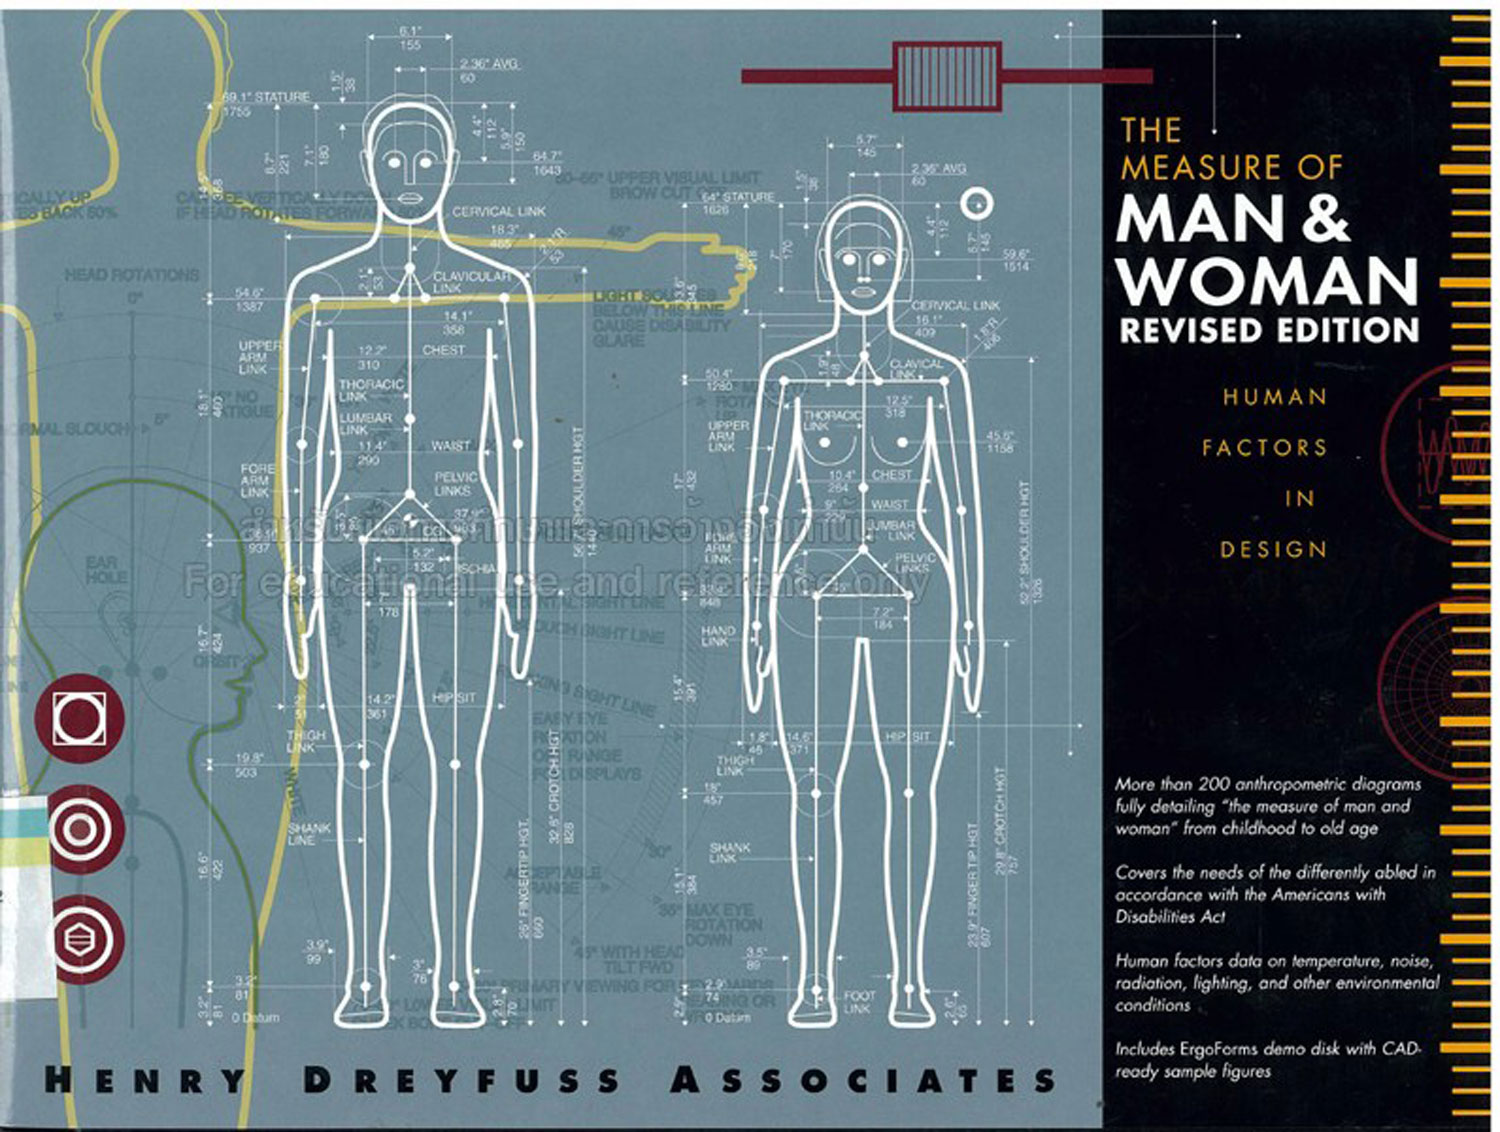 The Measure of Man and Woman: Human Factors in Design, Henry Dreyfuss Associated